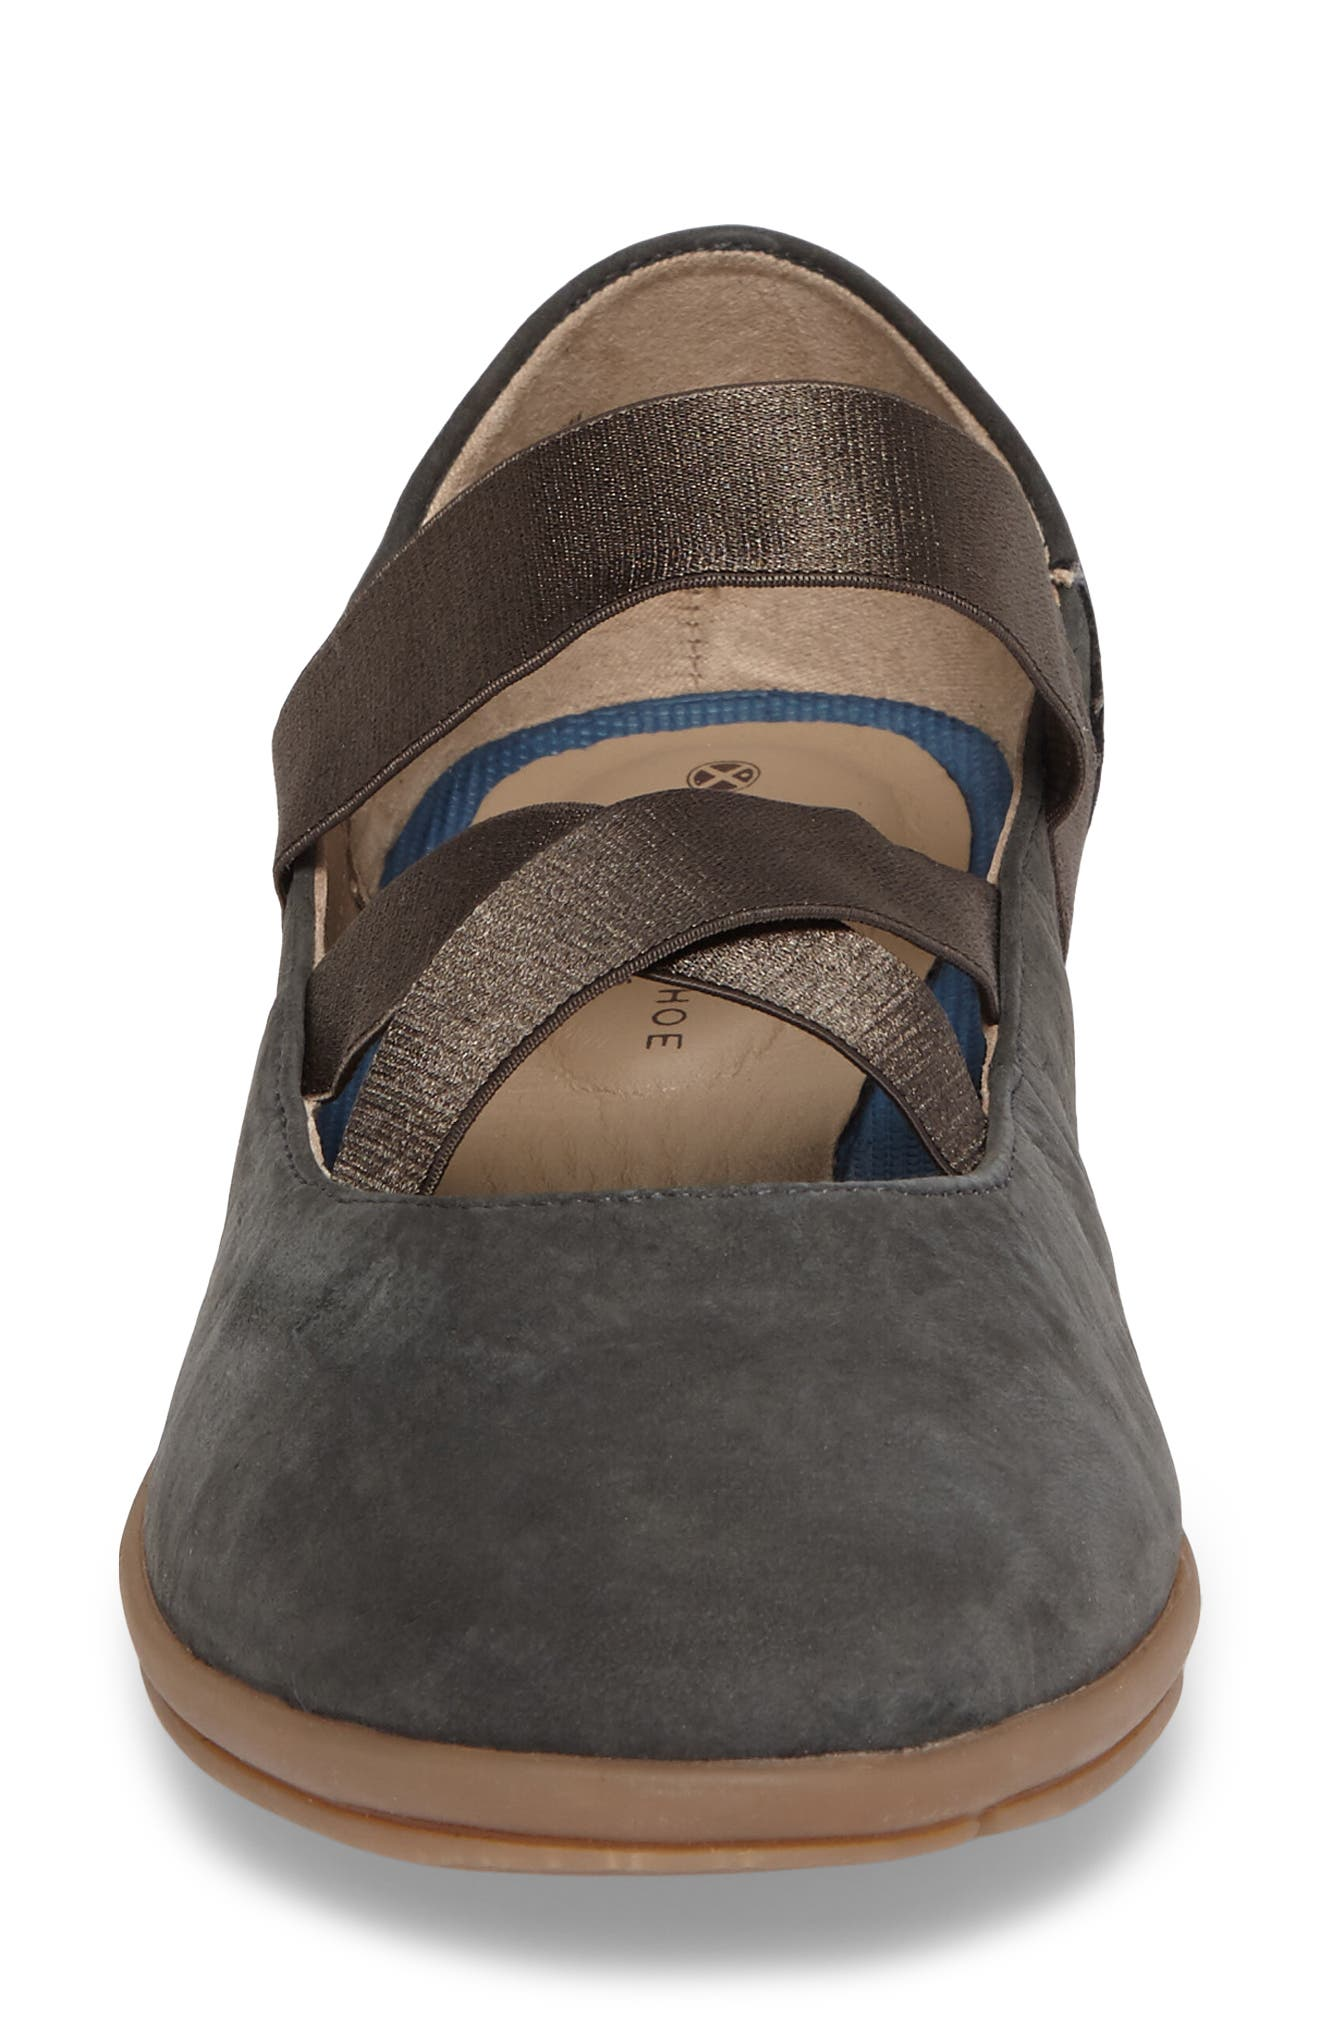 Meree Madrine Cross Strap Flat,                             Alternate thumbnail 5, color,                             Granite Grey Nubuck